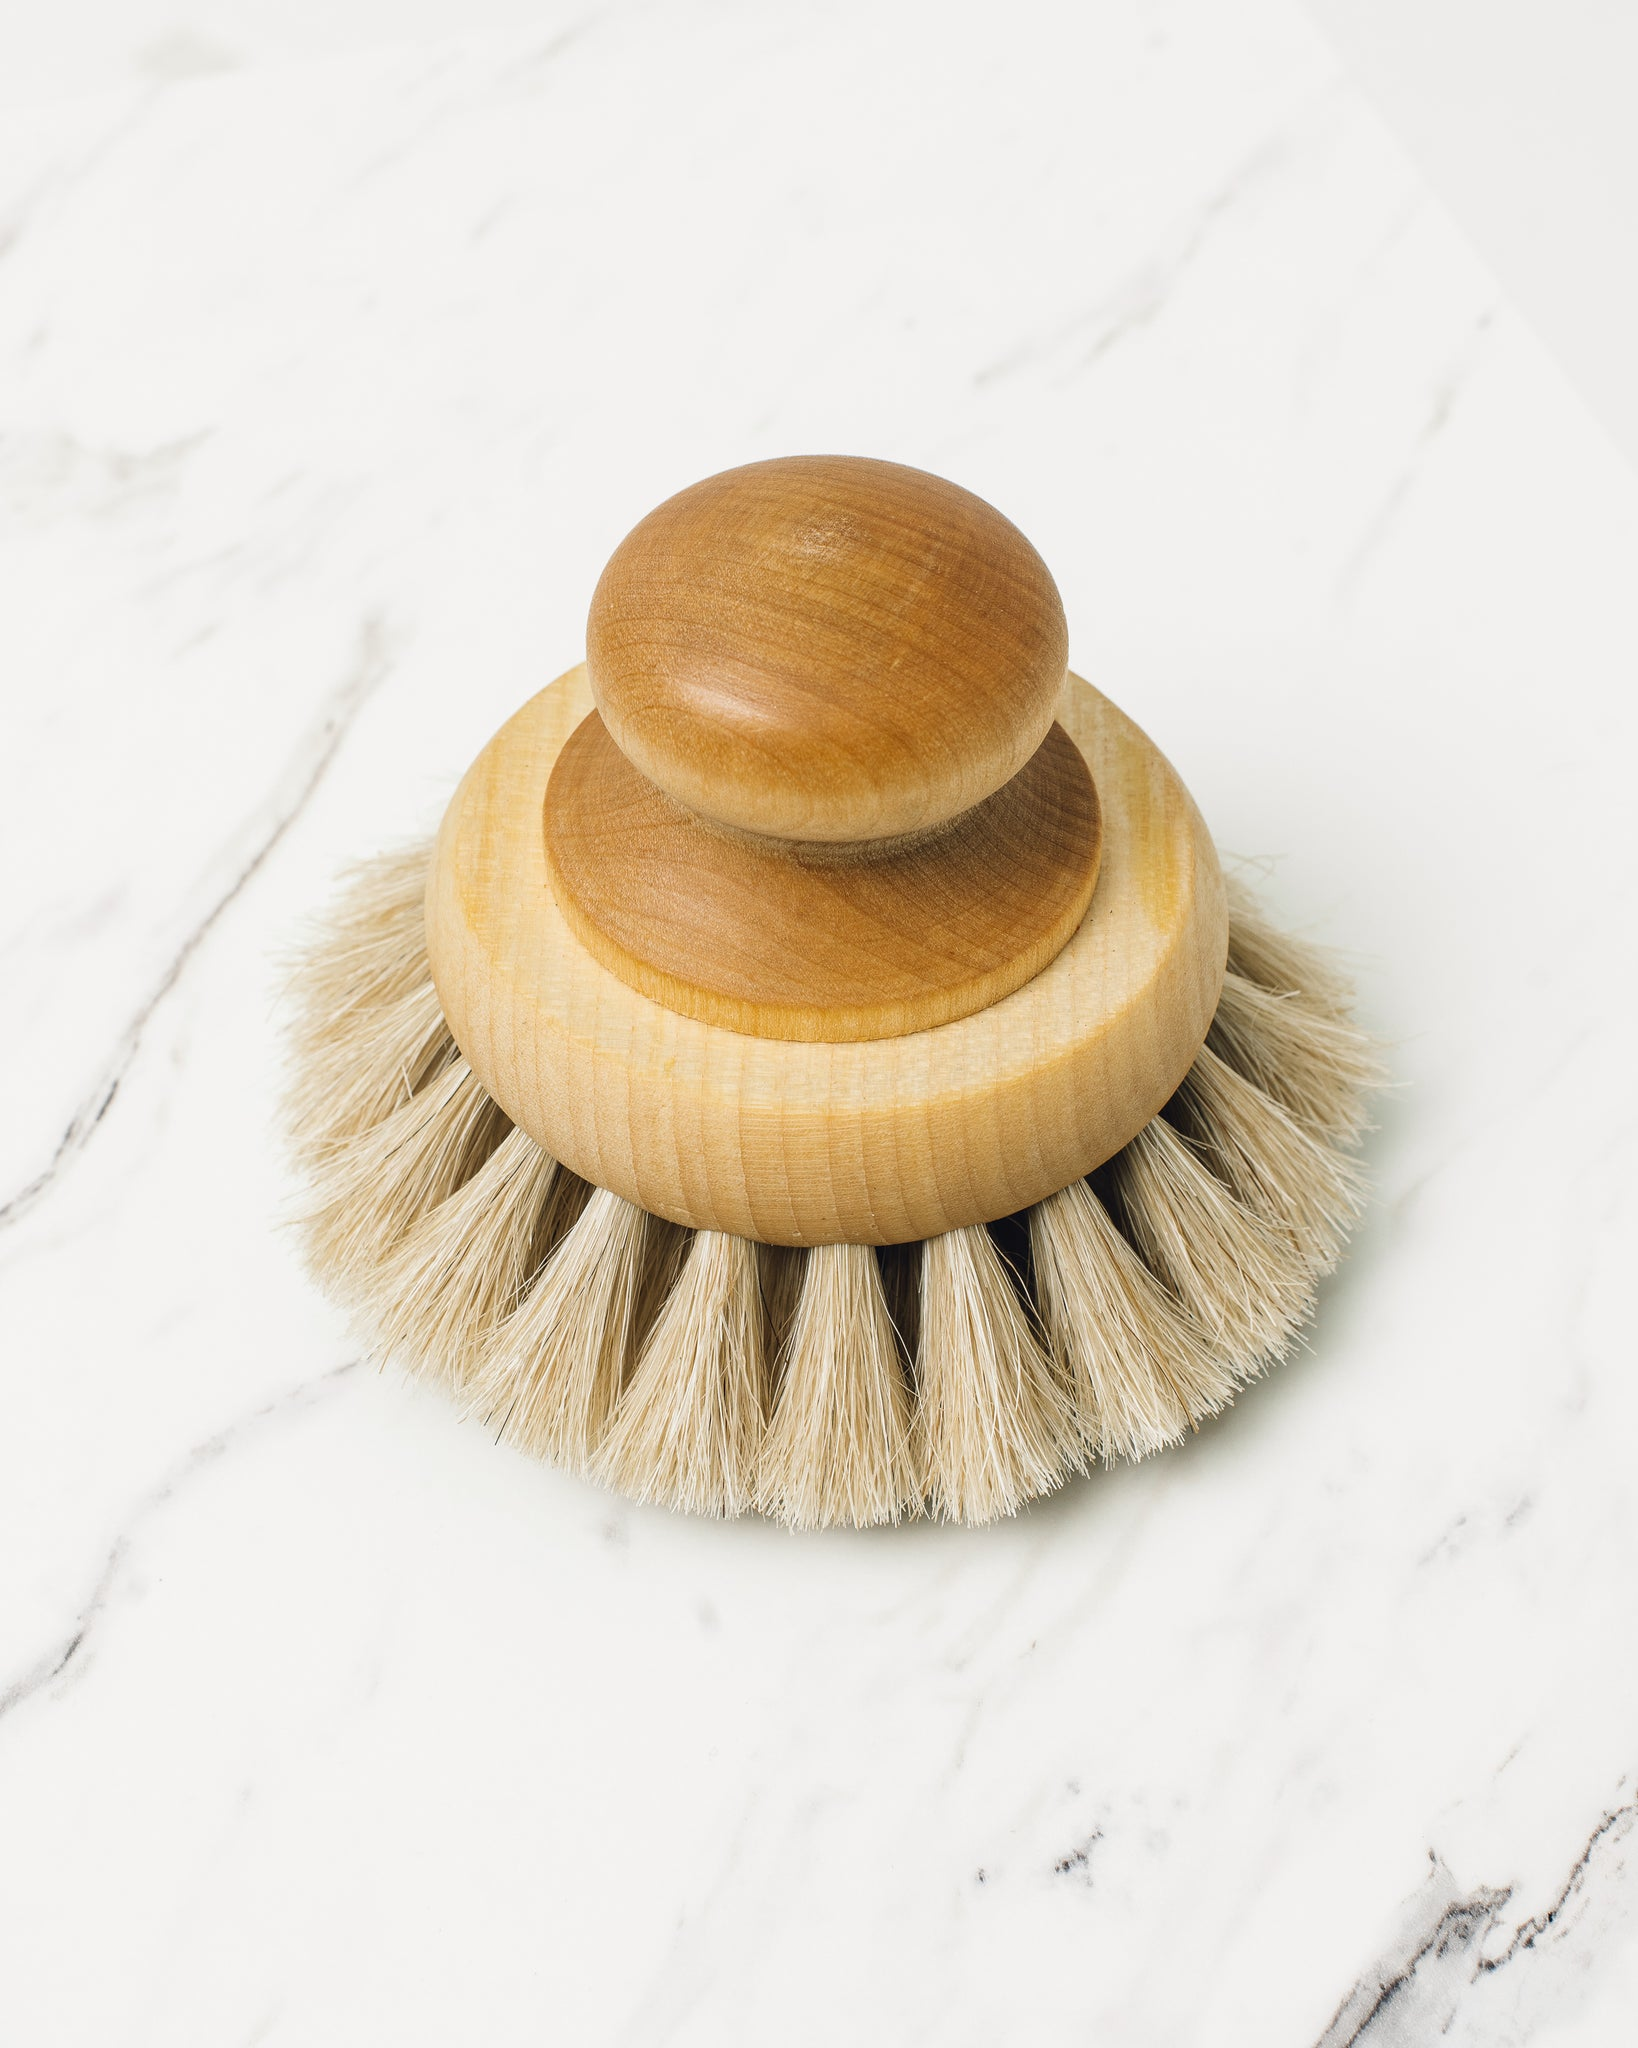 Bath Brush with Knob